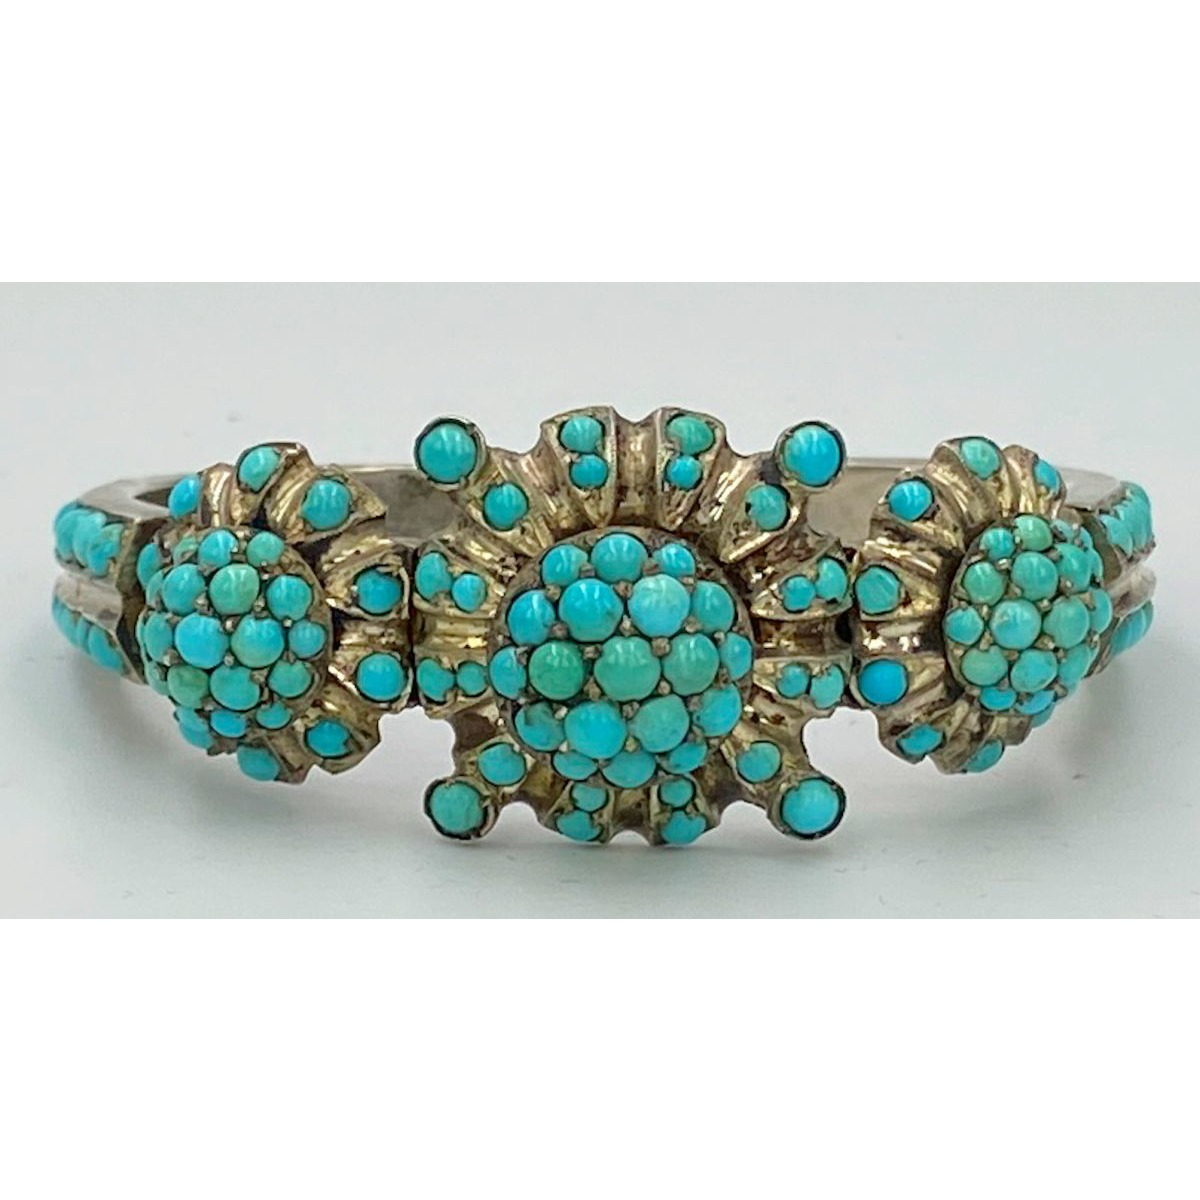 Tremendous Persian Turquoise Gilded Antique English Hinged Cuff Bangle